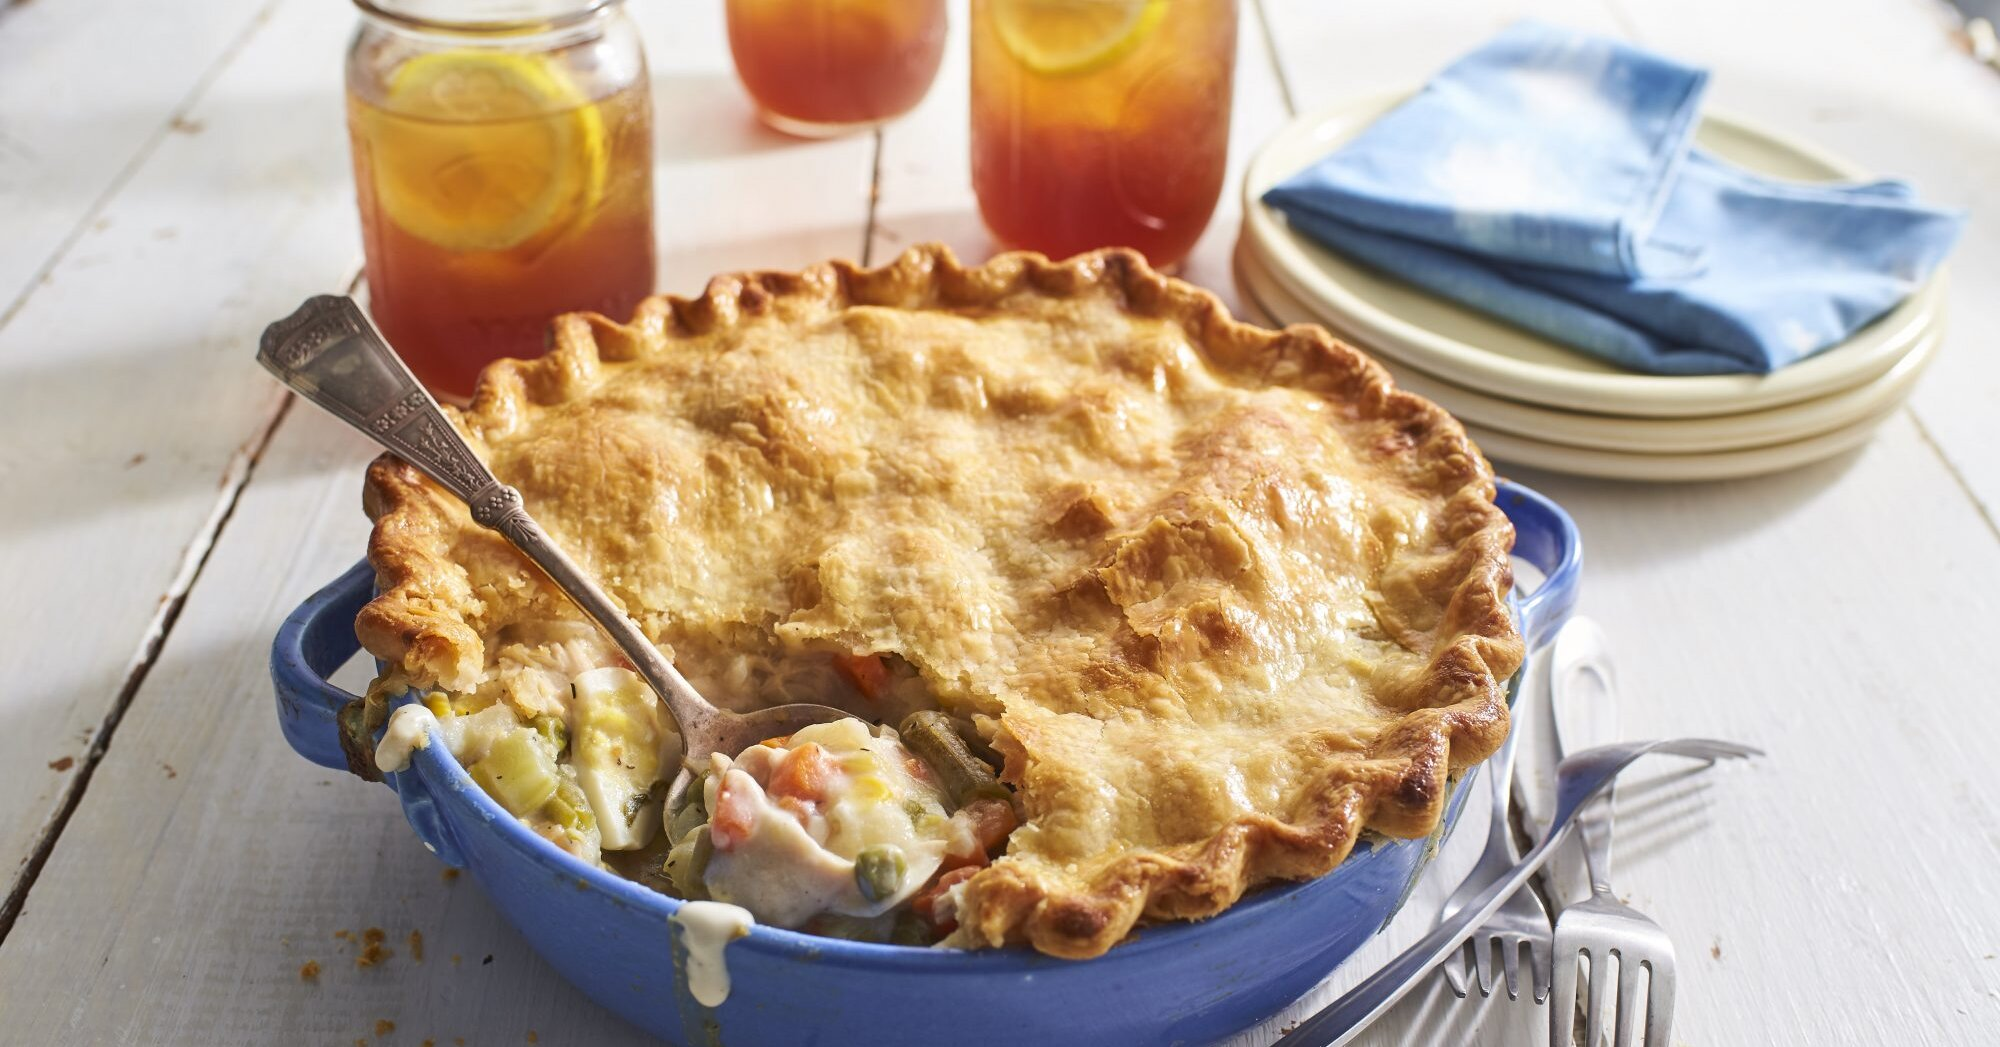 Simple Shortcuts for Making Chicken Pot Pie